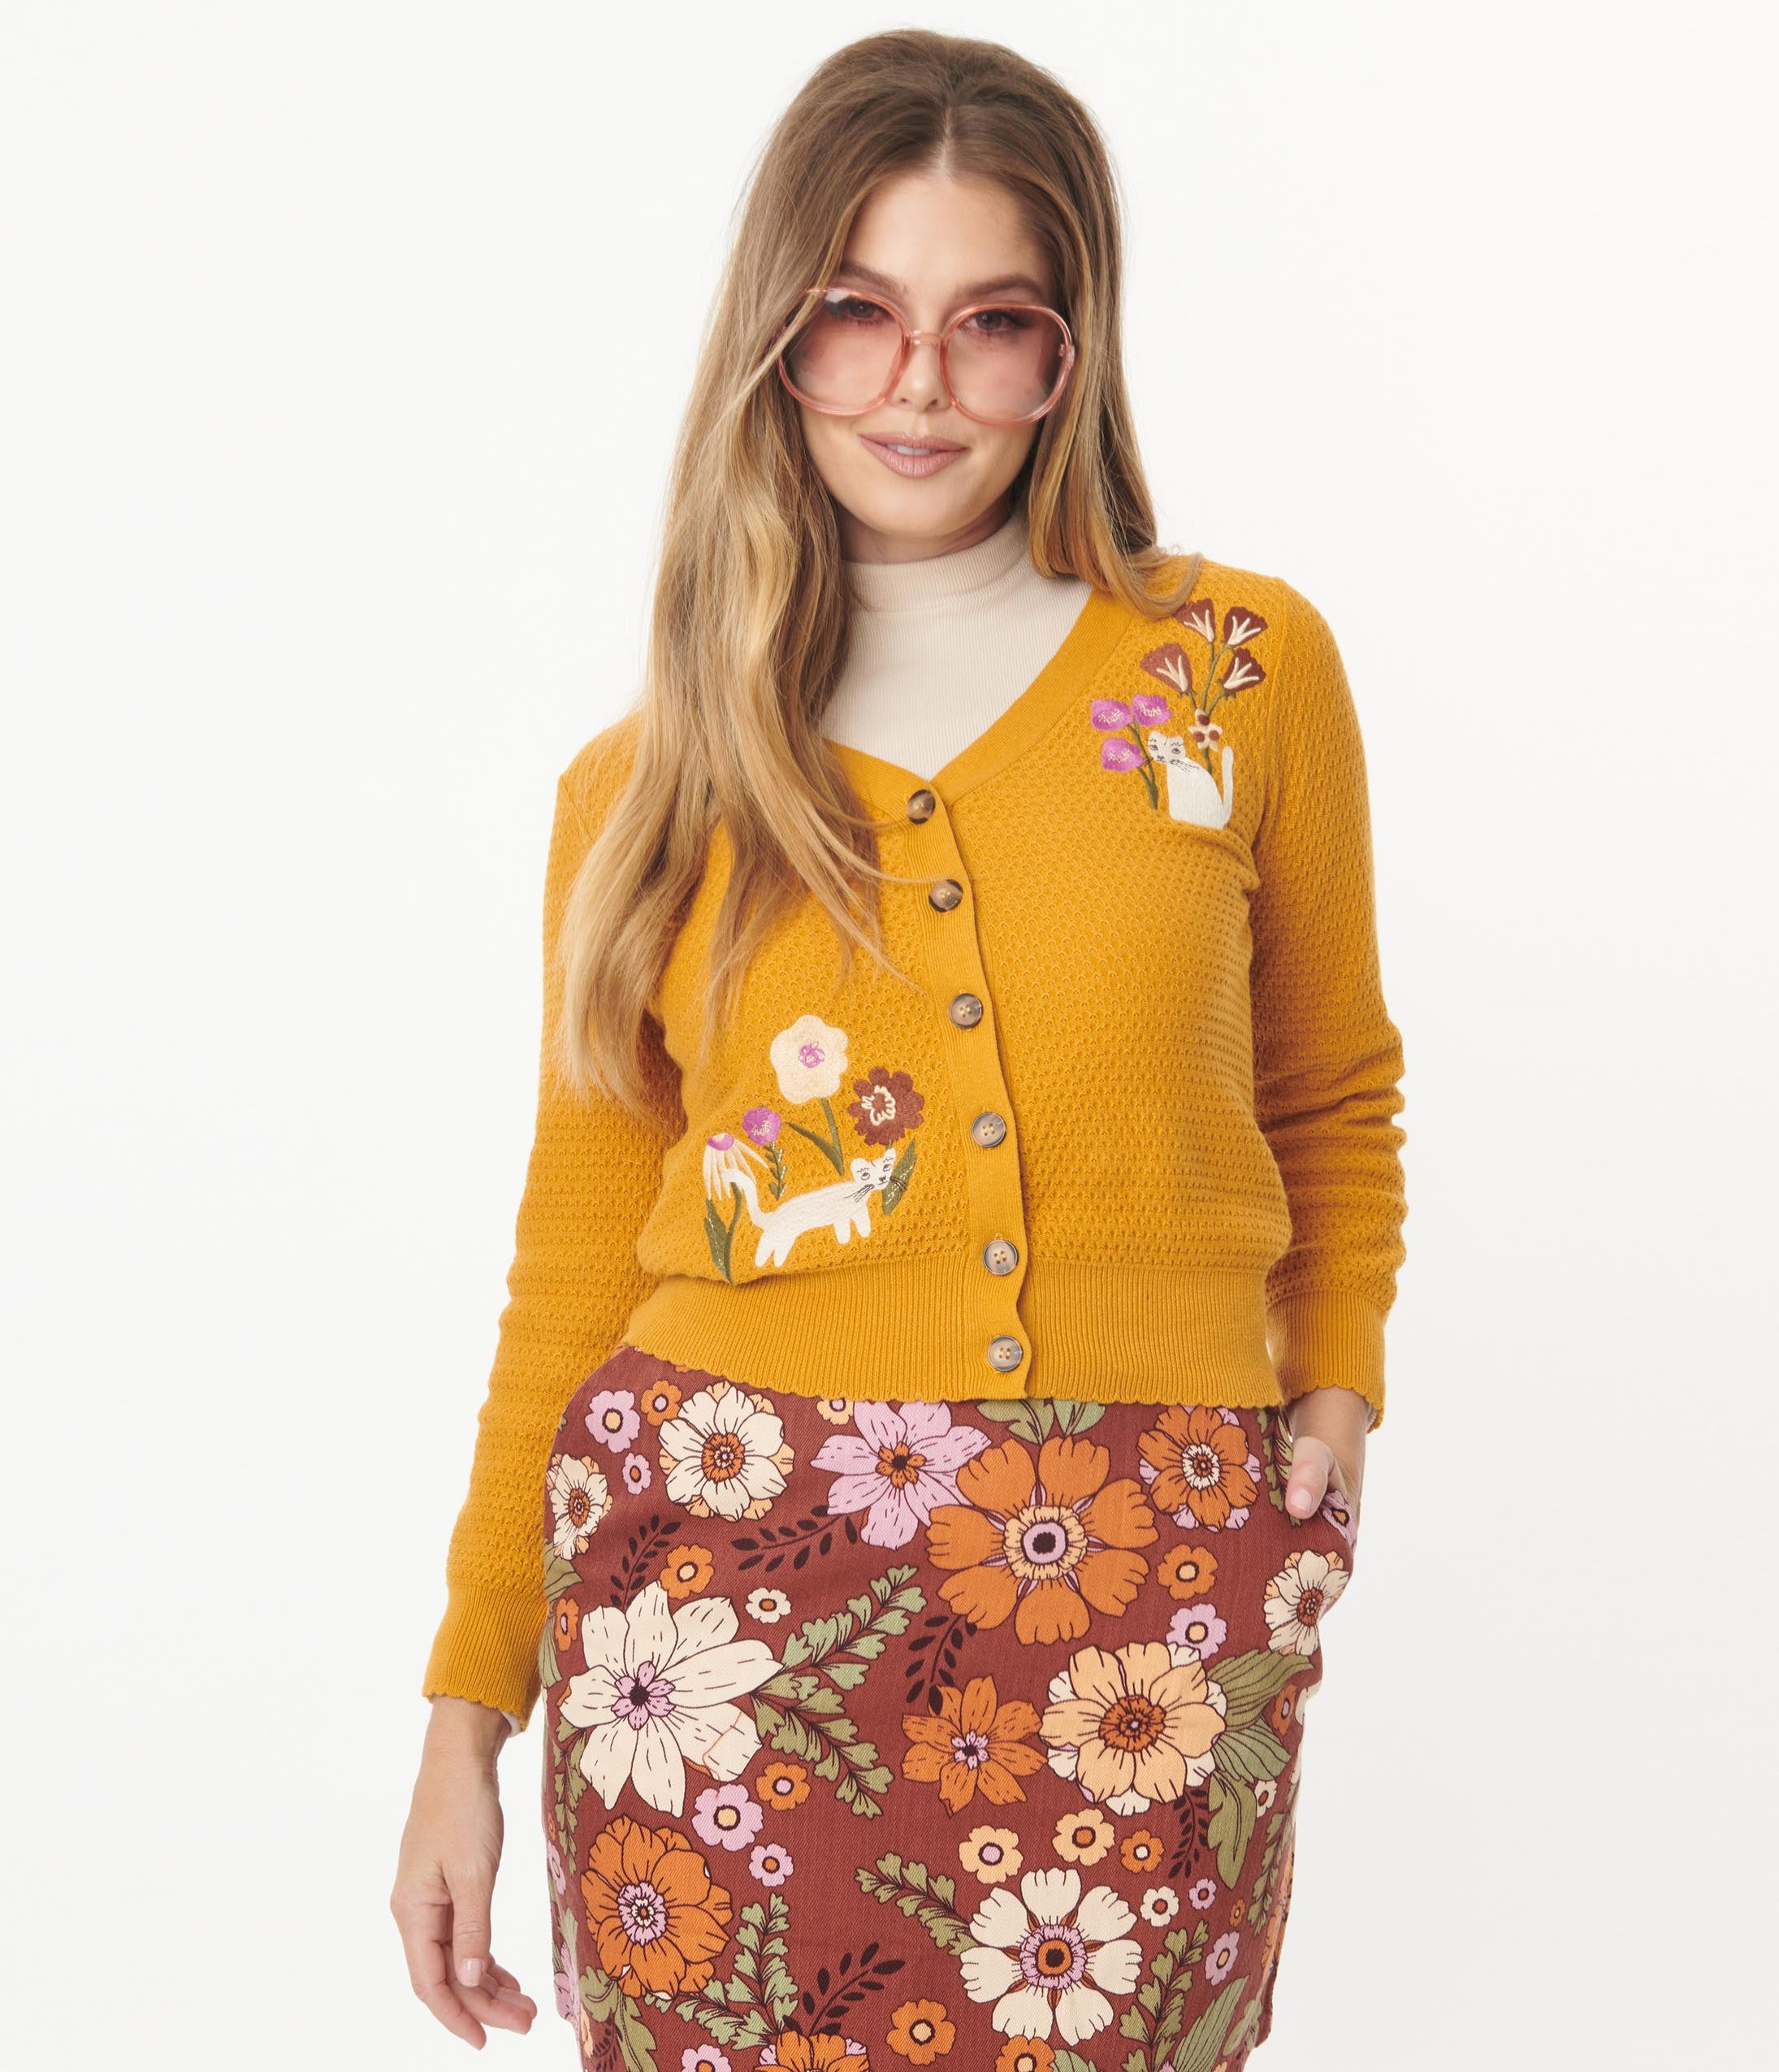 1960s Style Clothing & 60s Fashion Mustard  Floral Cat Embroidered Cardigan $82.00 AT vintagedancer.com